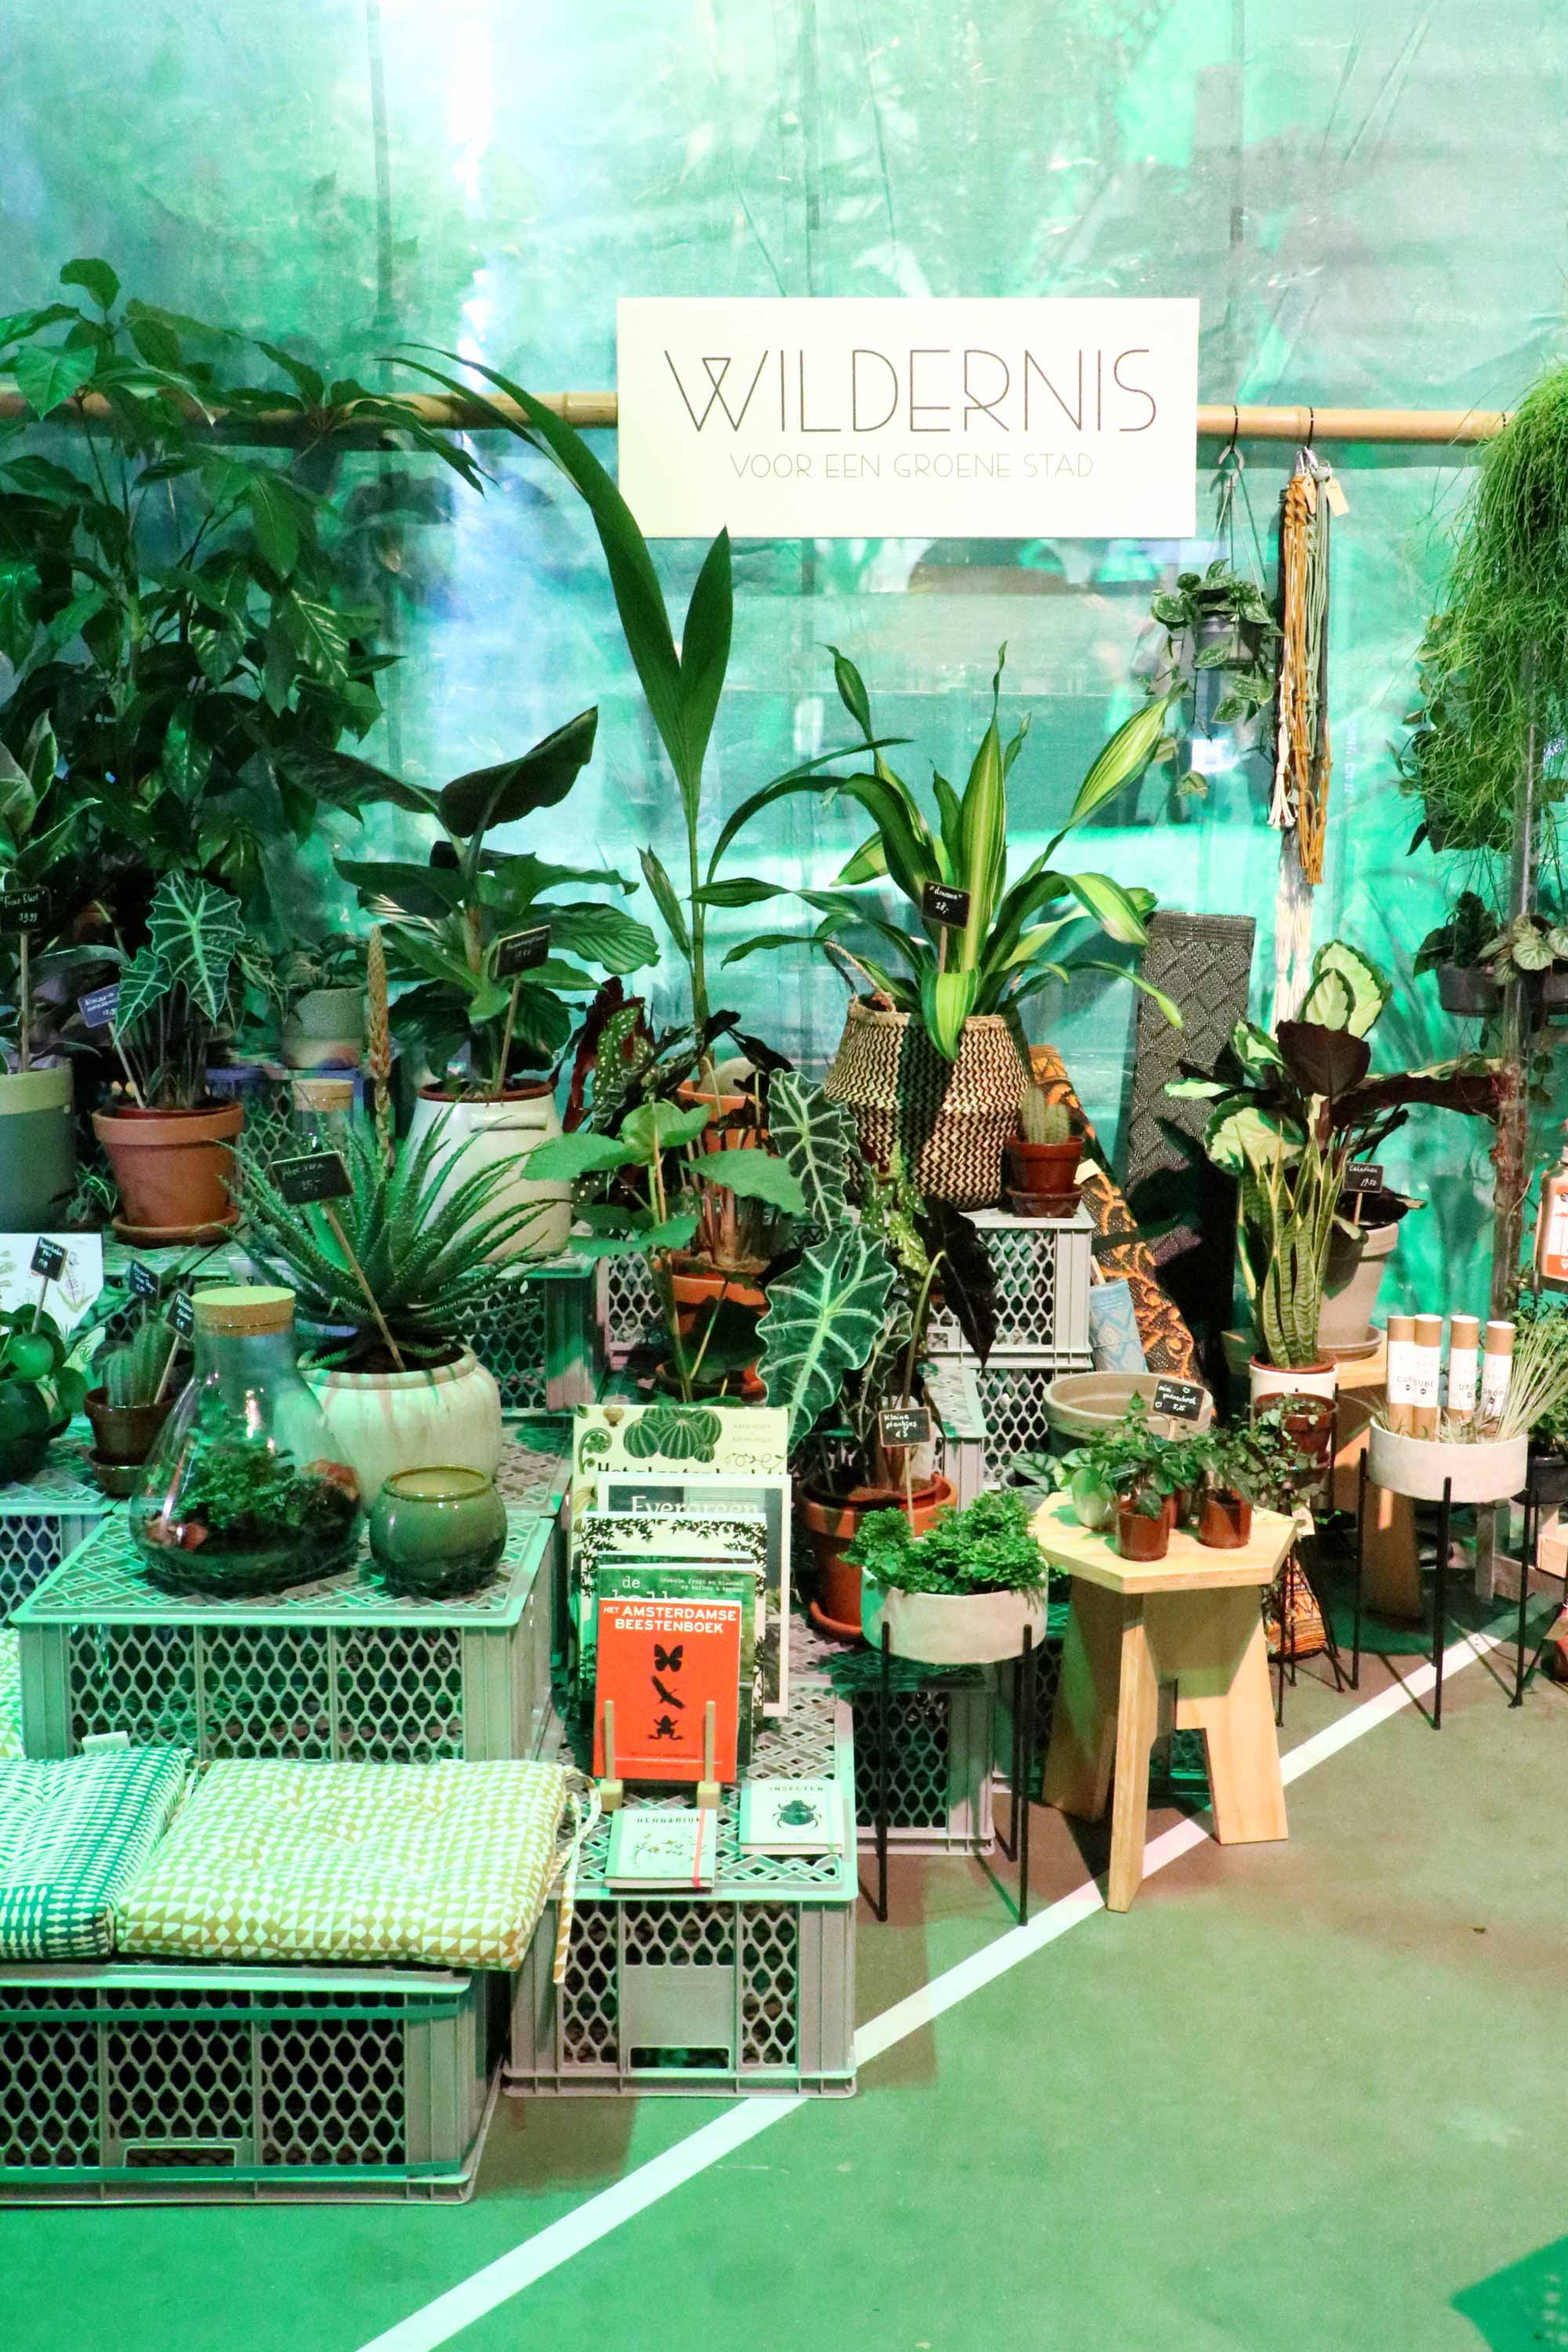 greenhouse festival planten groen urban jungle